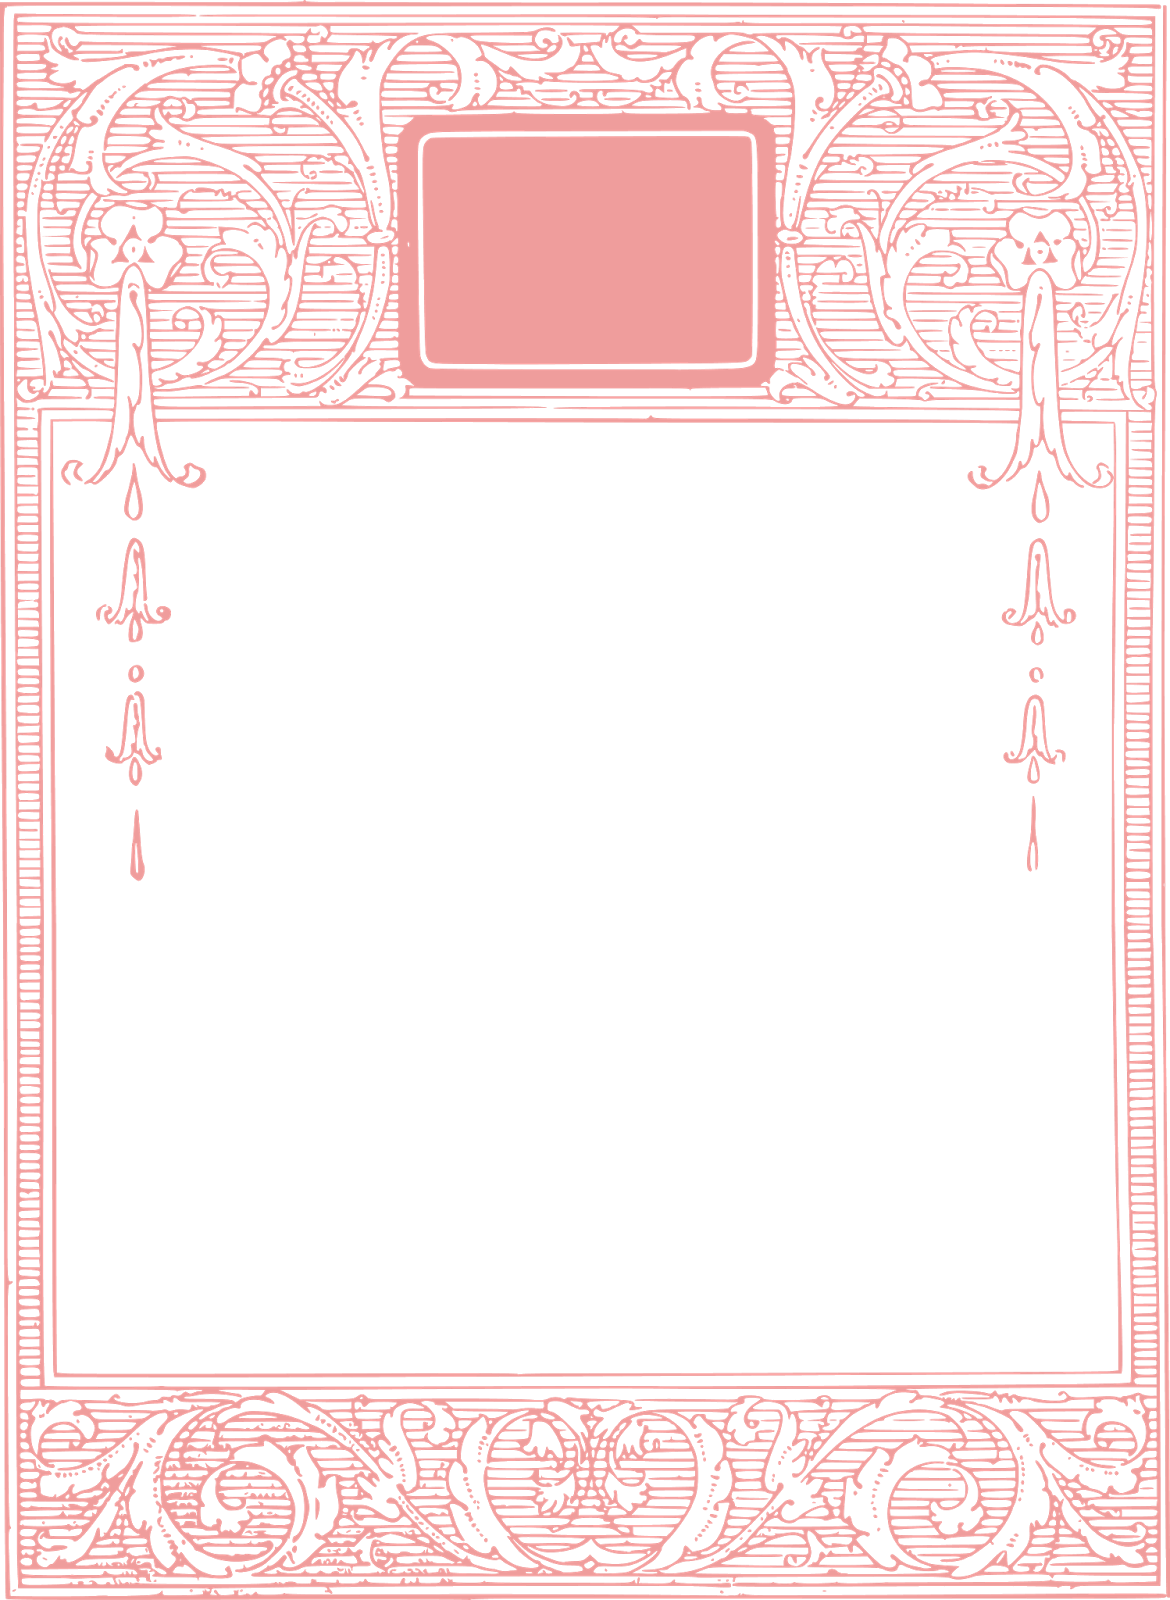 Gorgeous Free Vintage Frame Borders And Images